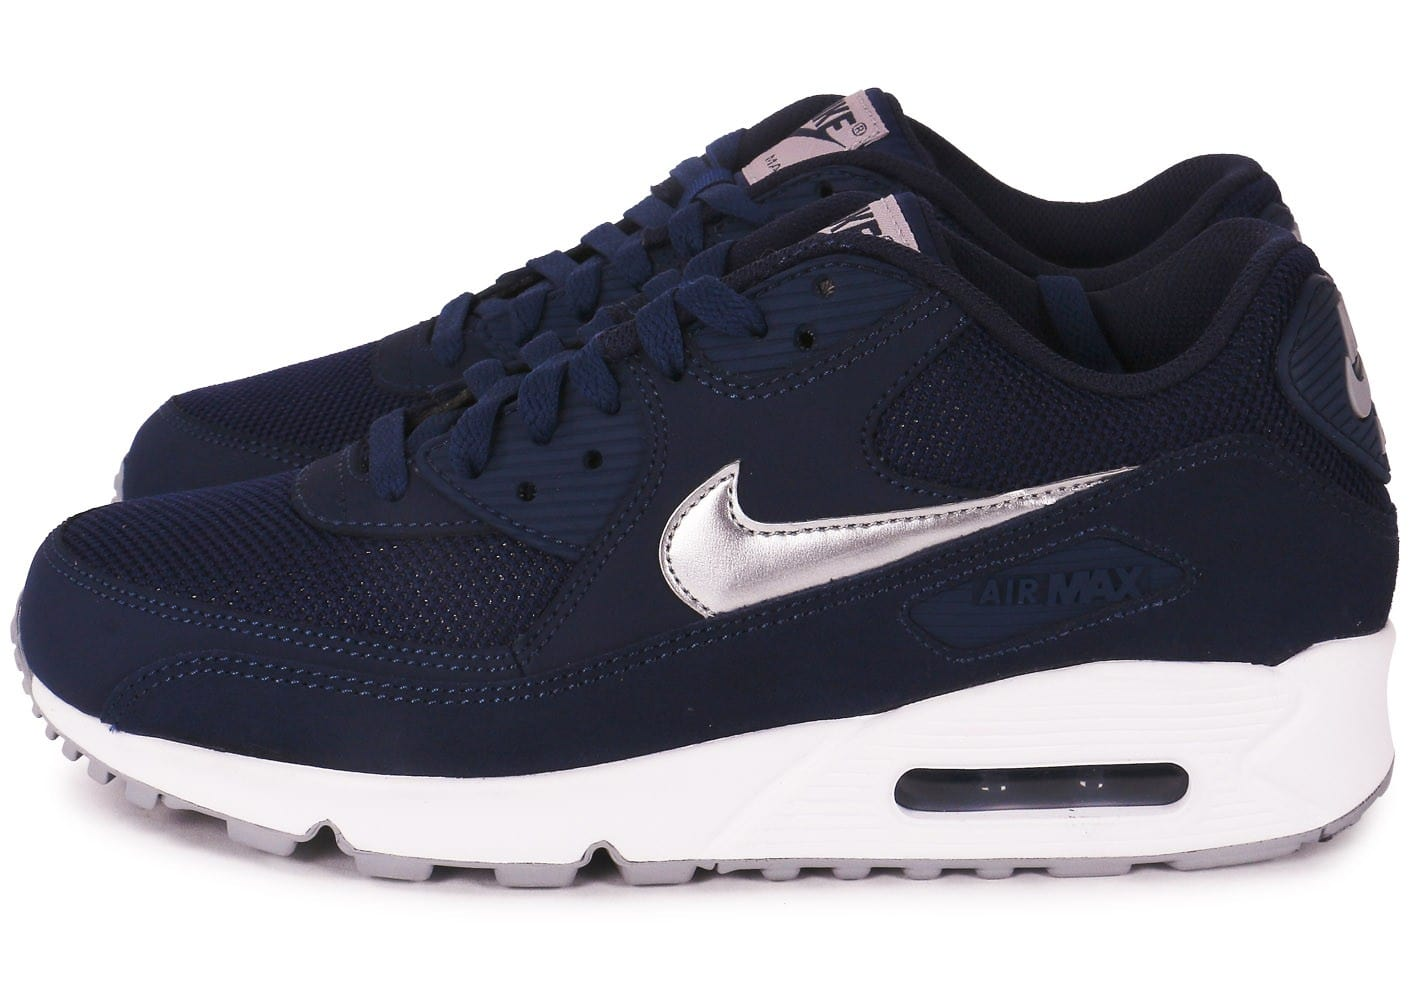 nike air max 90 marine et blanc chaussures homme chausport. Black Bedroom Furniture Sets. Home Design Ideas